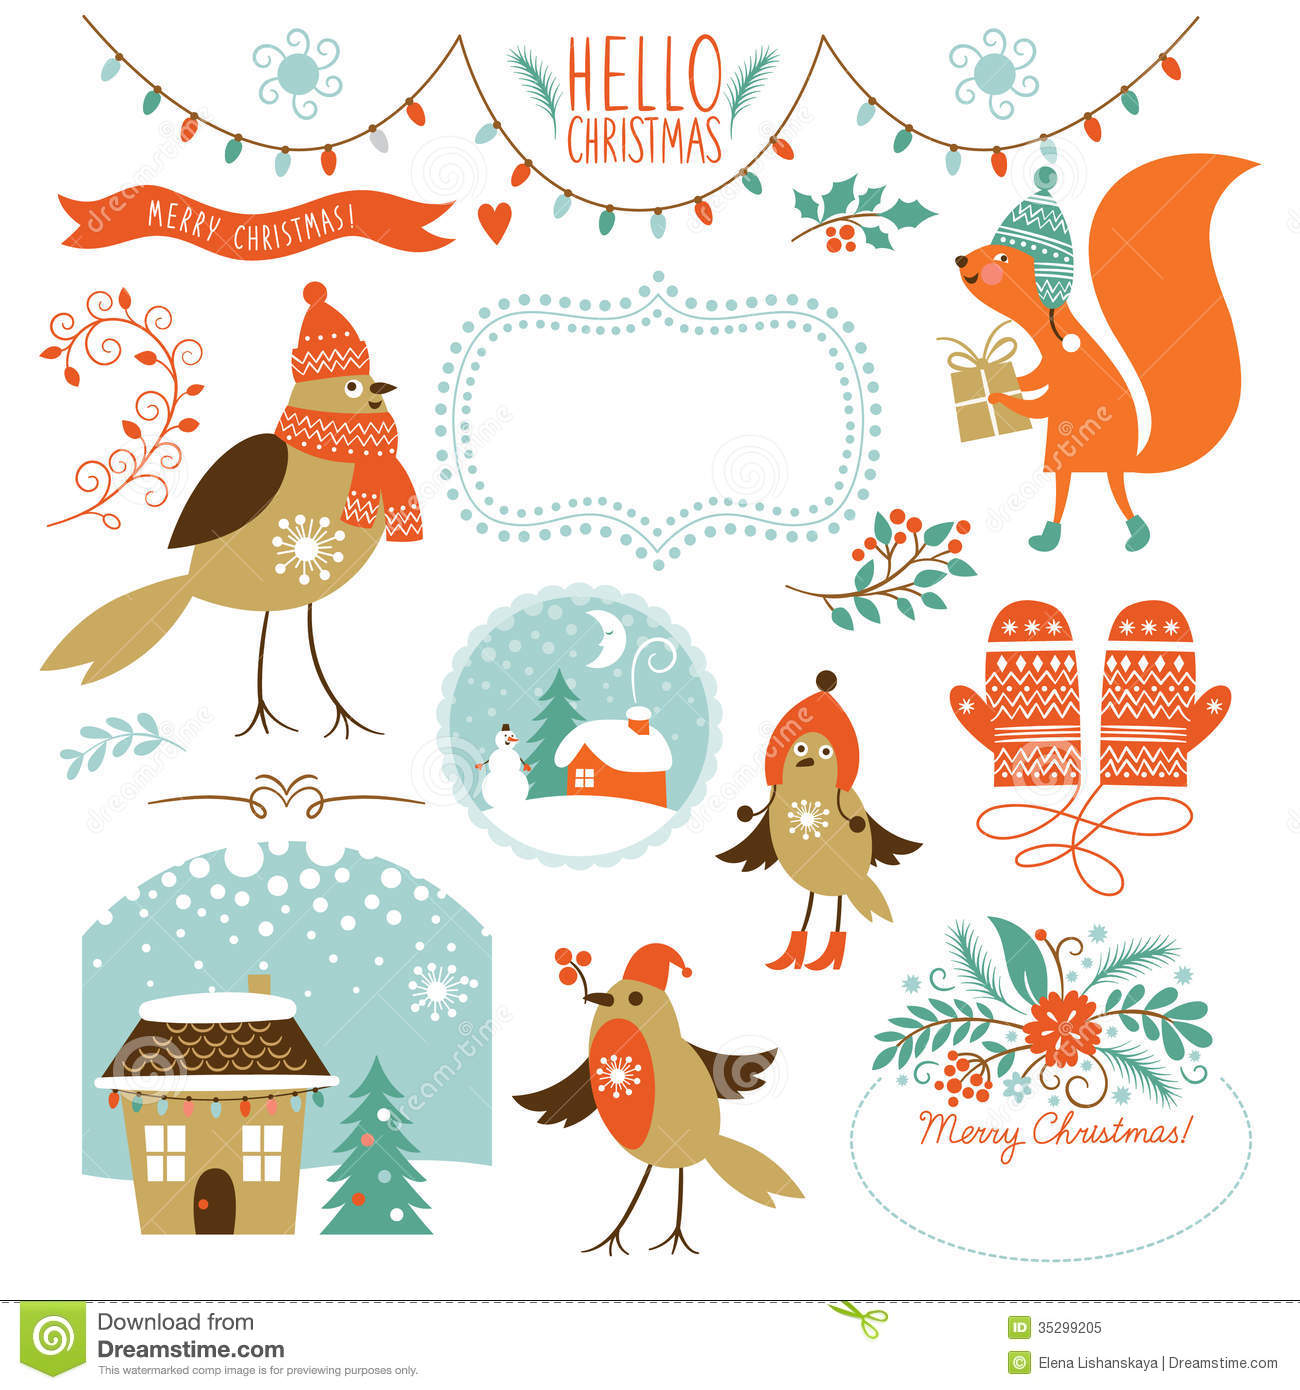 Christmas Graphics Free Download.Set Of Christmas Graphic Elements Stock Illustration